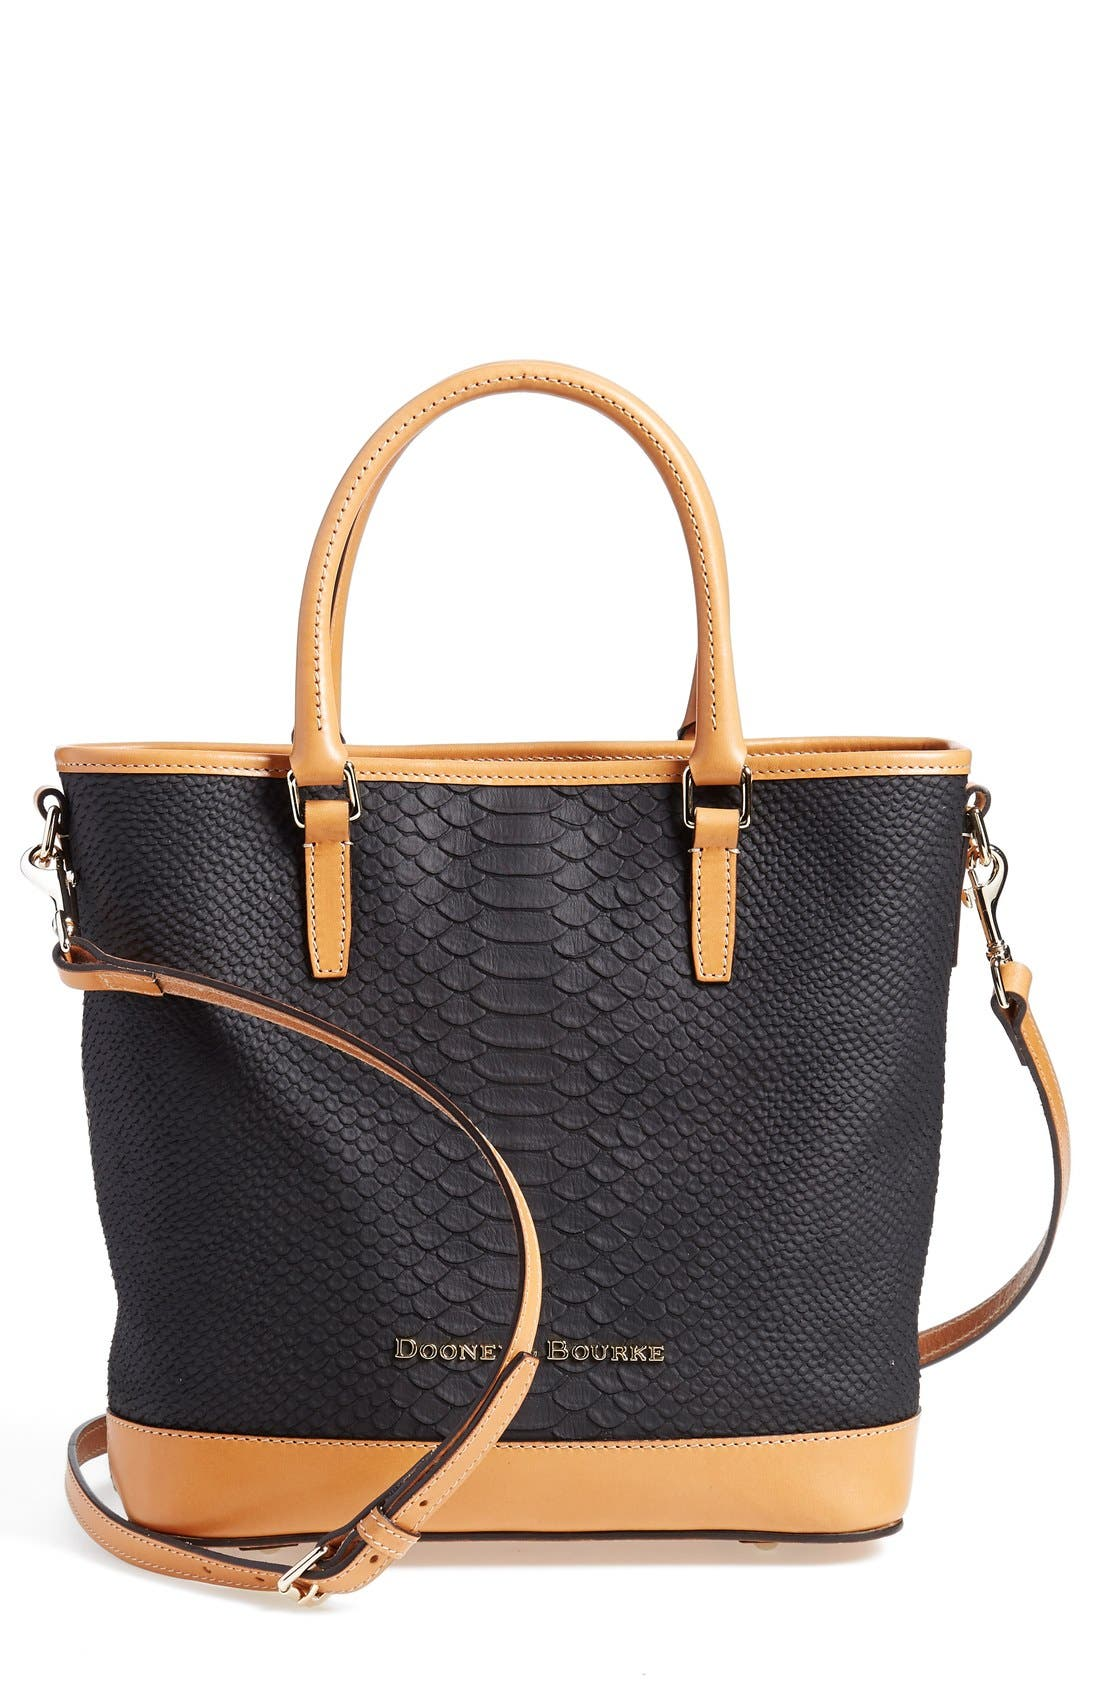 DOONEY & BOURKE 'Cara' Snake Embossed Leather Satchel, Main, color, 001